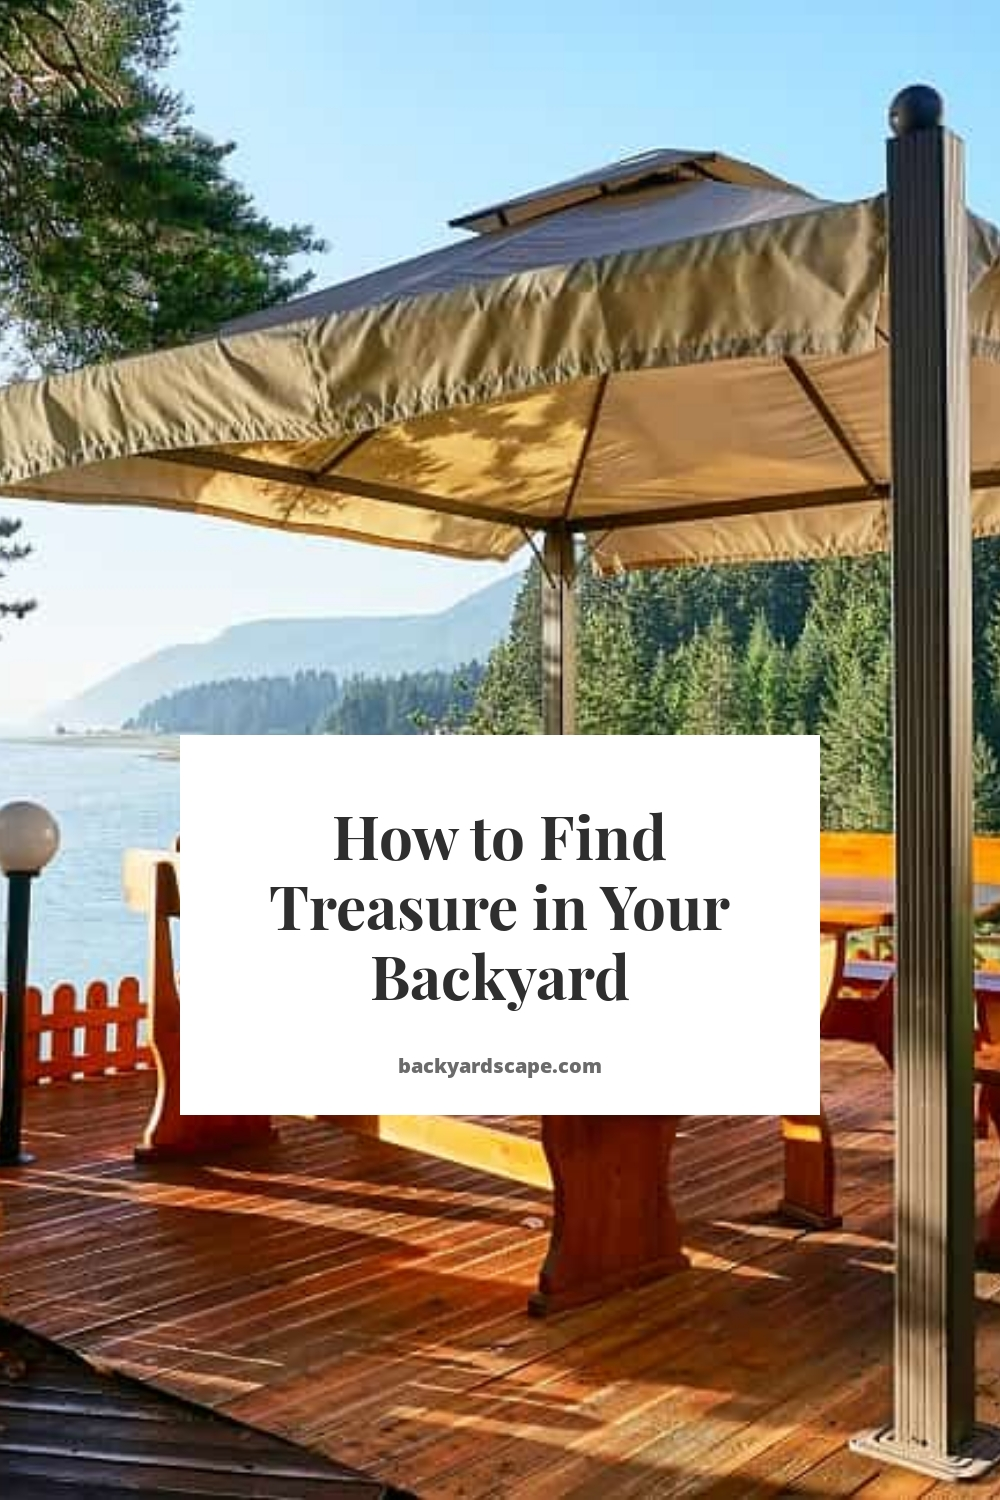 How to Find Treasure in Your Backyard